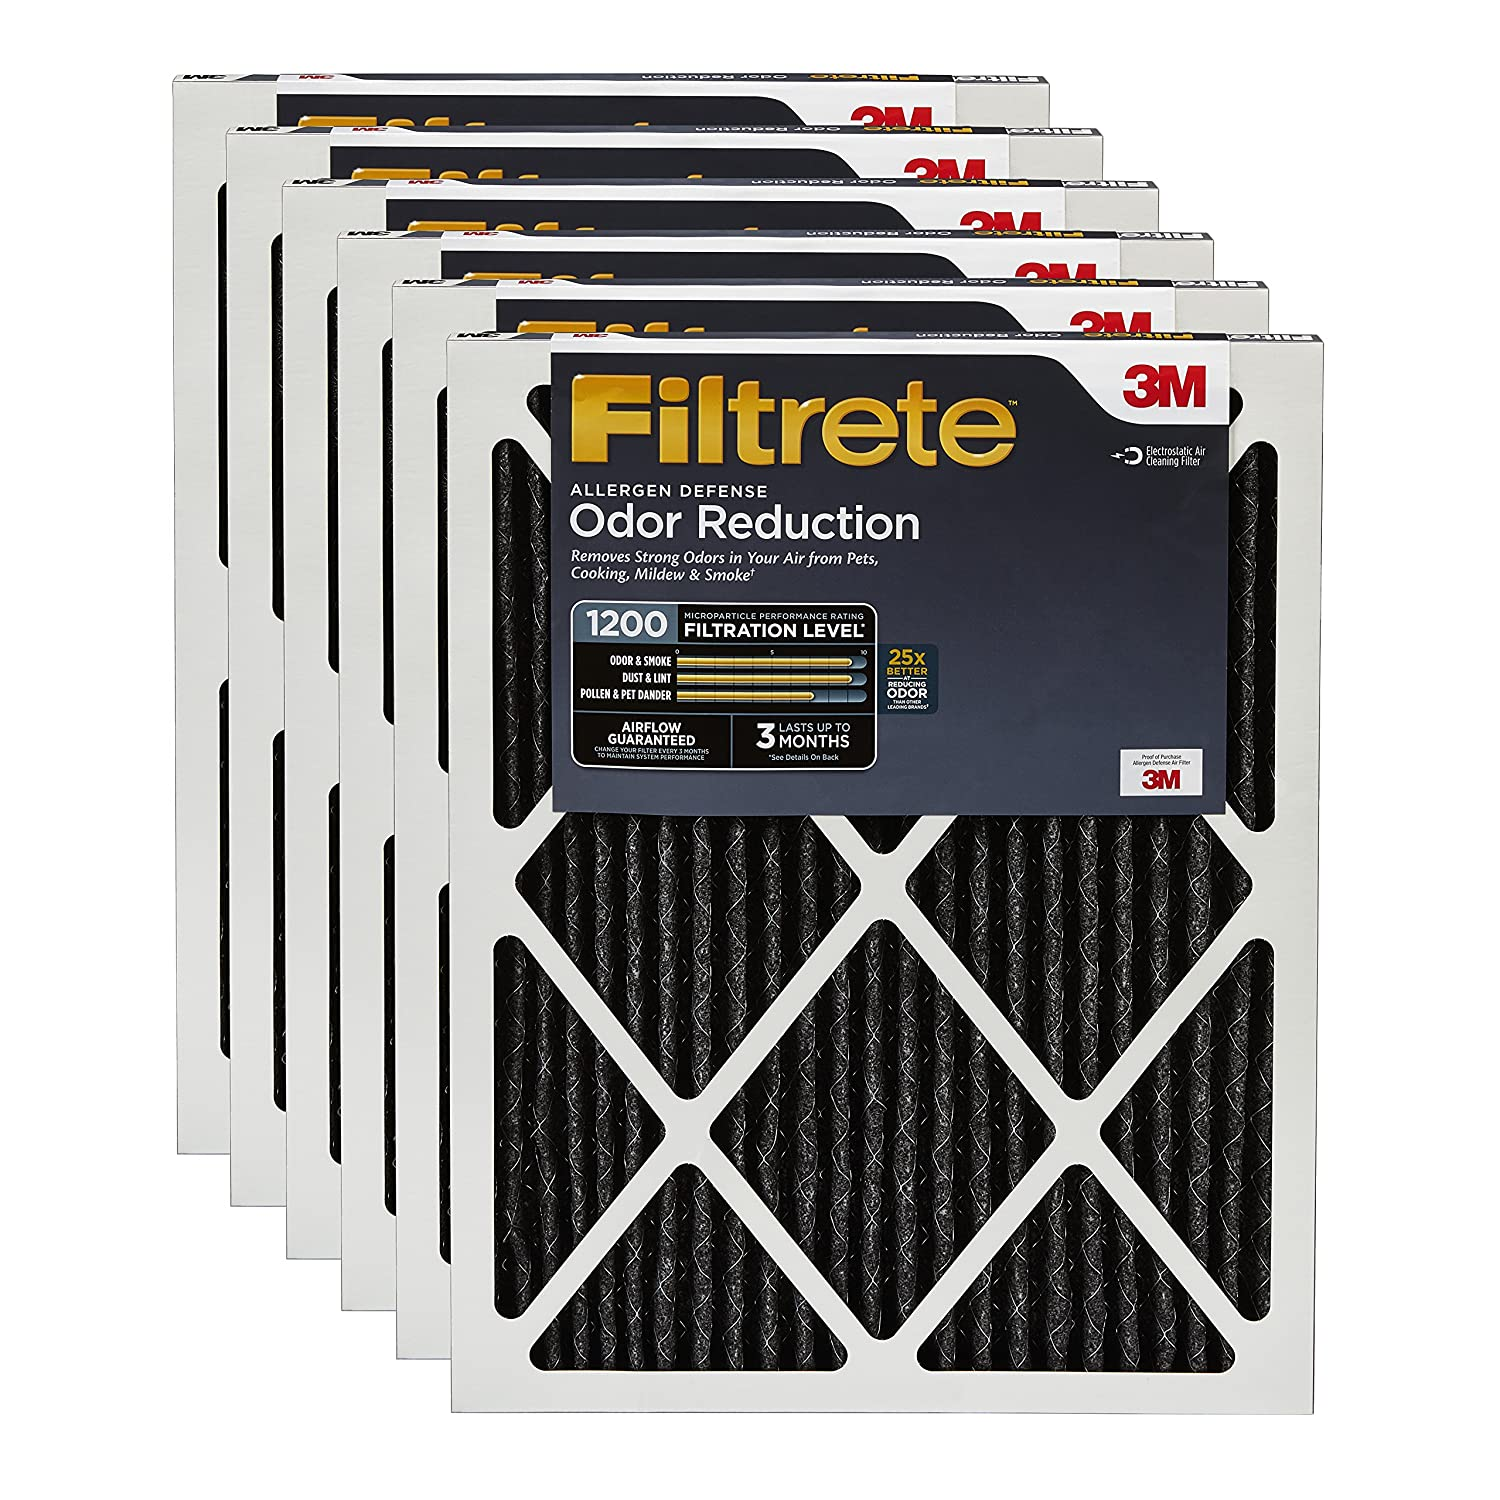 3. Filtrete 14x30x1, AC Furnace Air Filter, MPR 1200, Allergen Defense Odor Reduction, 6-Pack